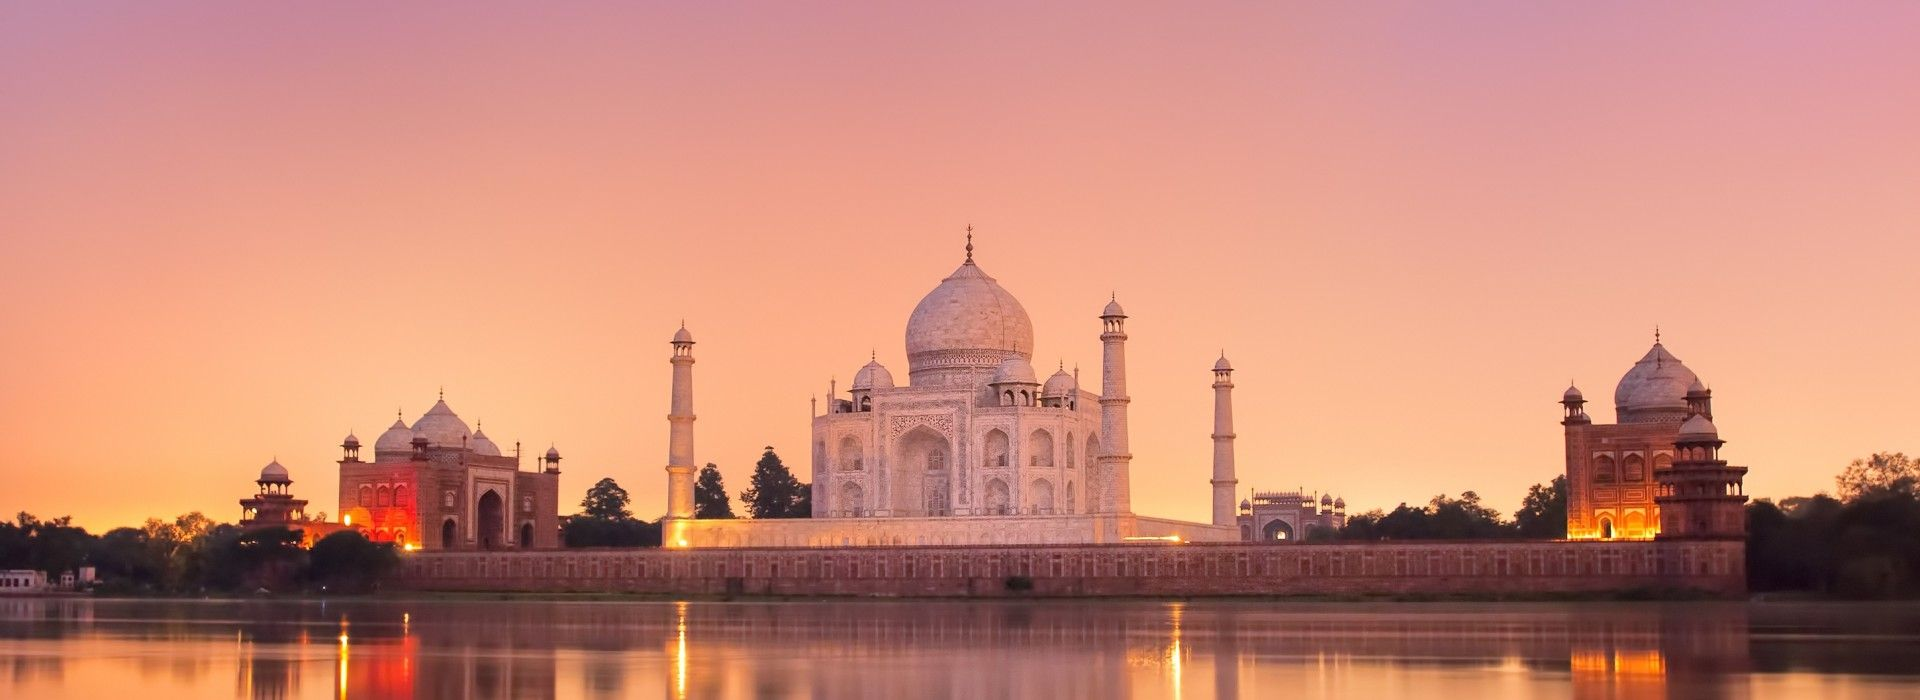 Sightseeing, attractions, culture and history Tours in Amritsar